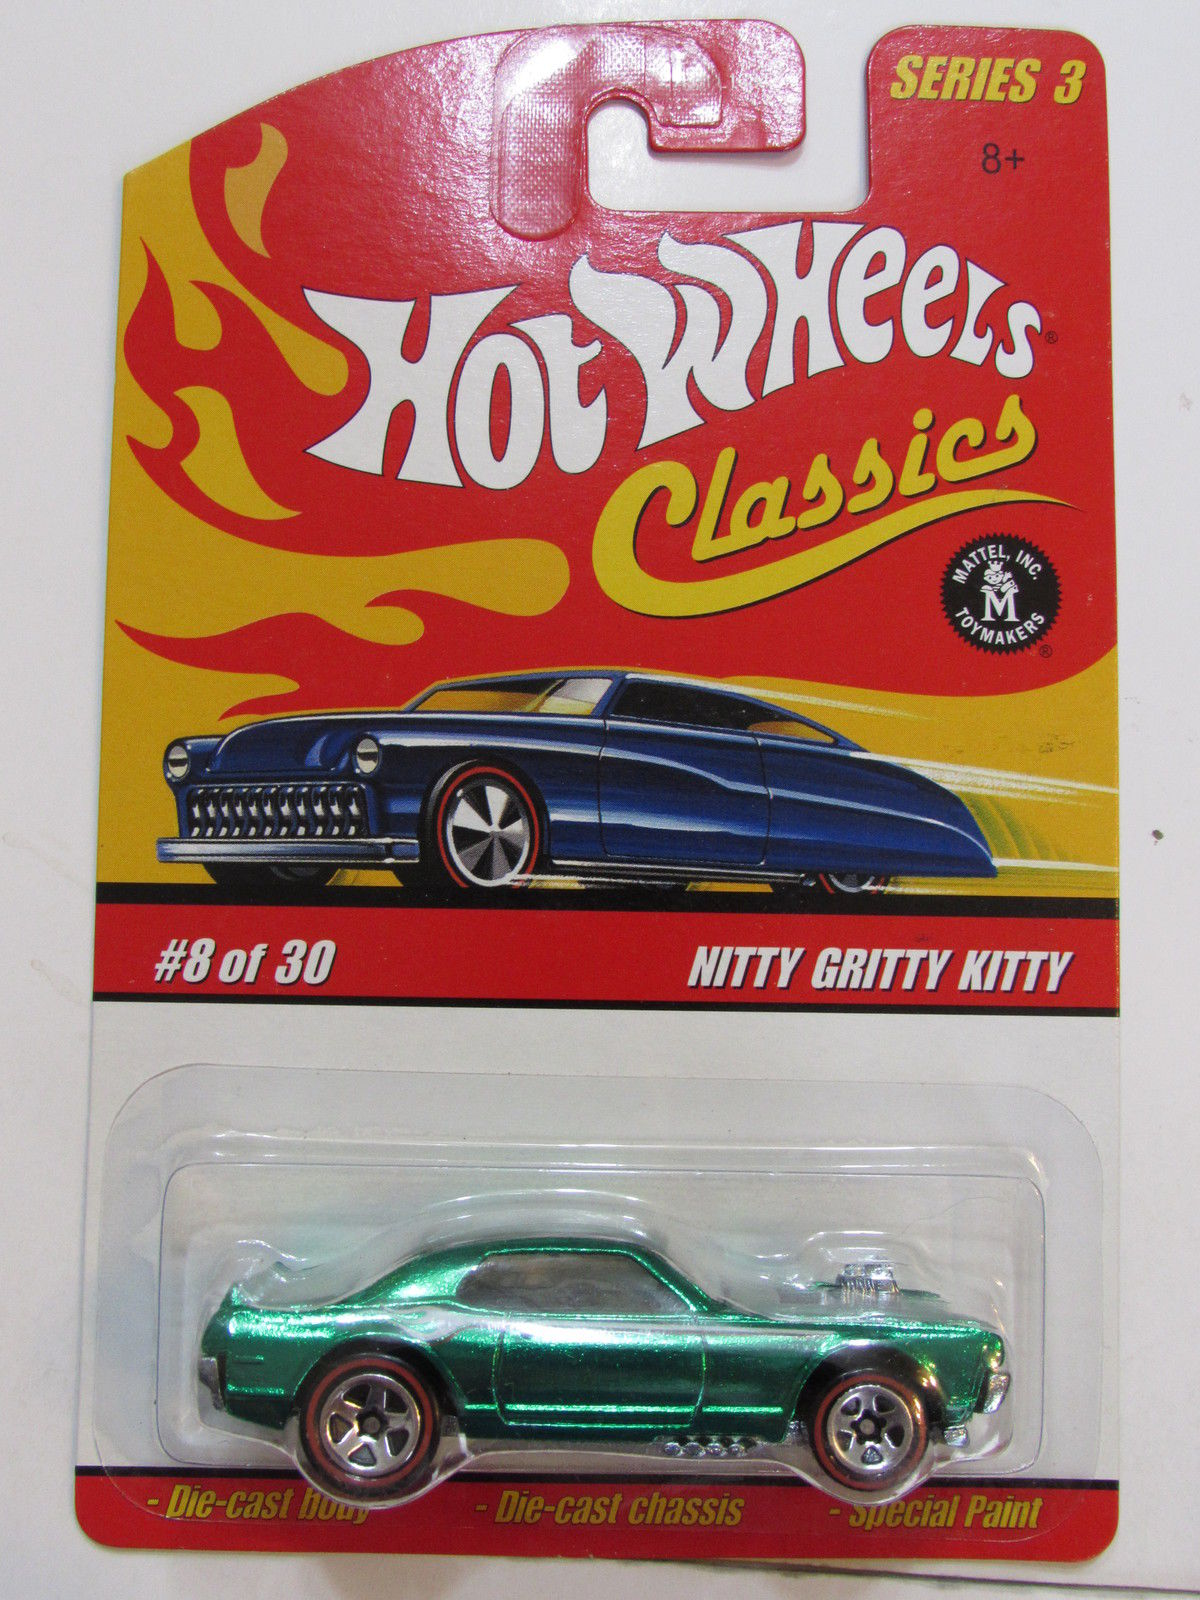 HOT WHEELS CLASSICS SERIES 3 #8/30 NITTY GRITTY KITTY GREEN